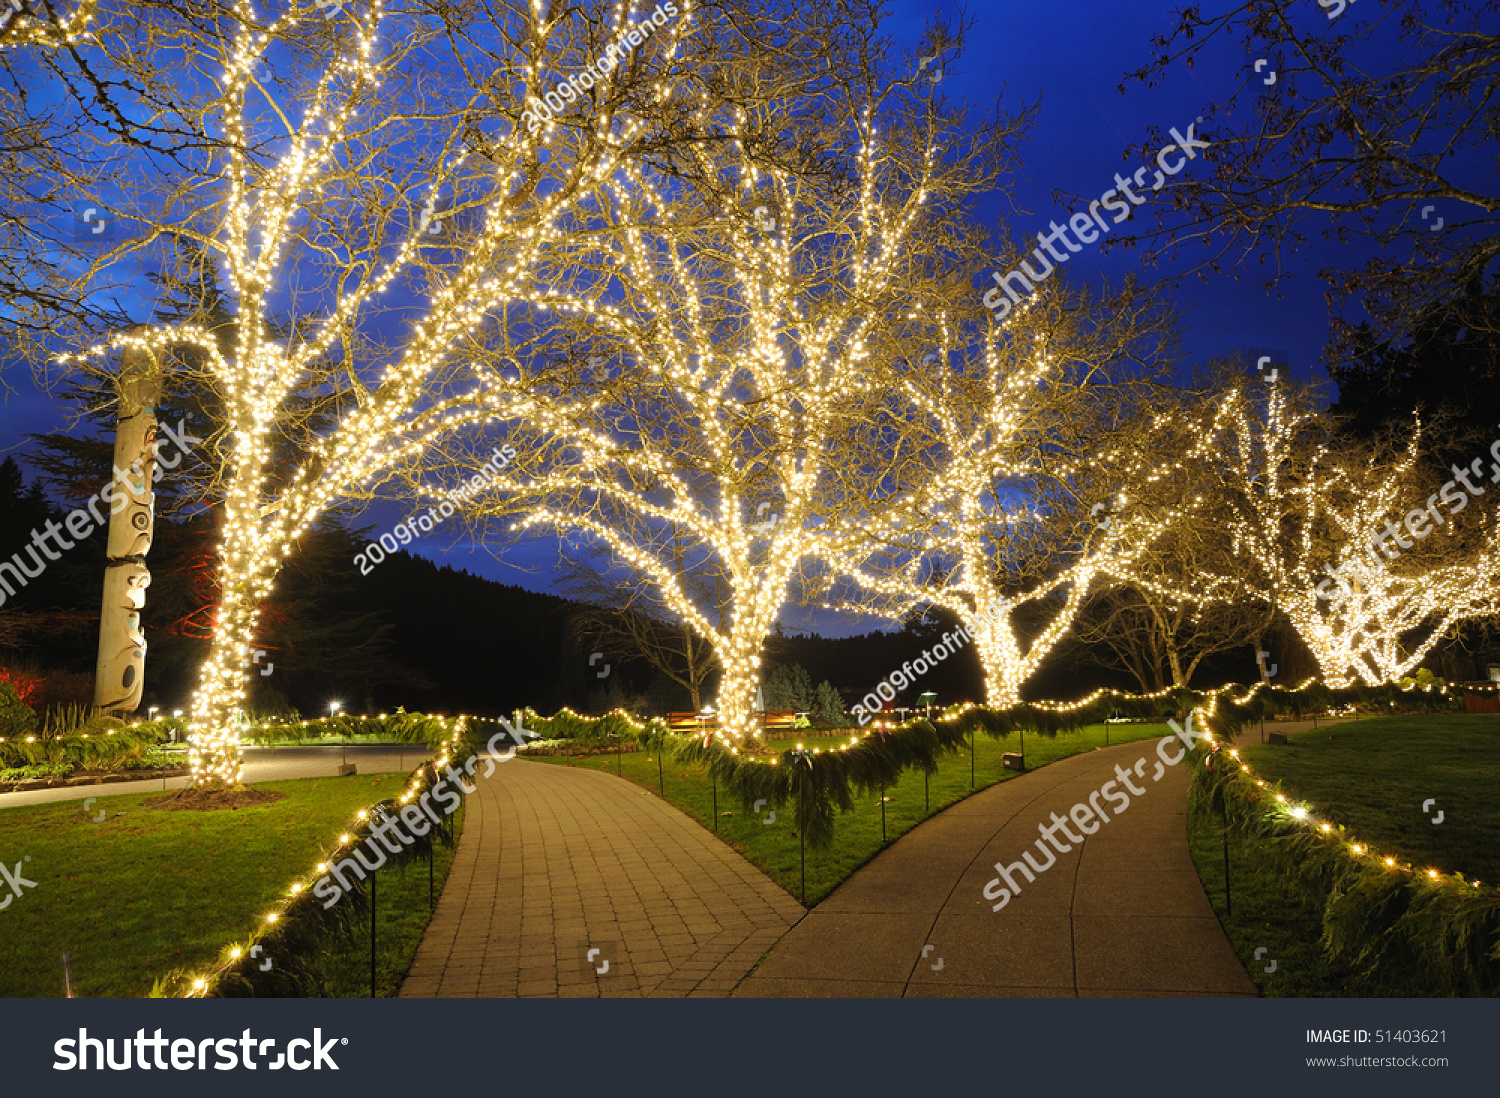 Beautiful Sunken Garden Night Scene Christmas Stock Photo (Download ...